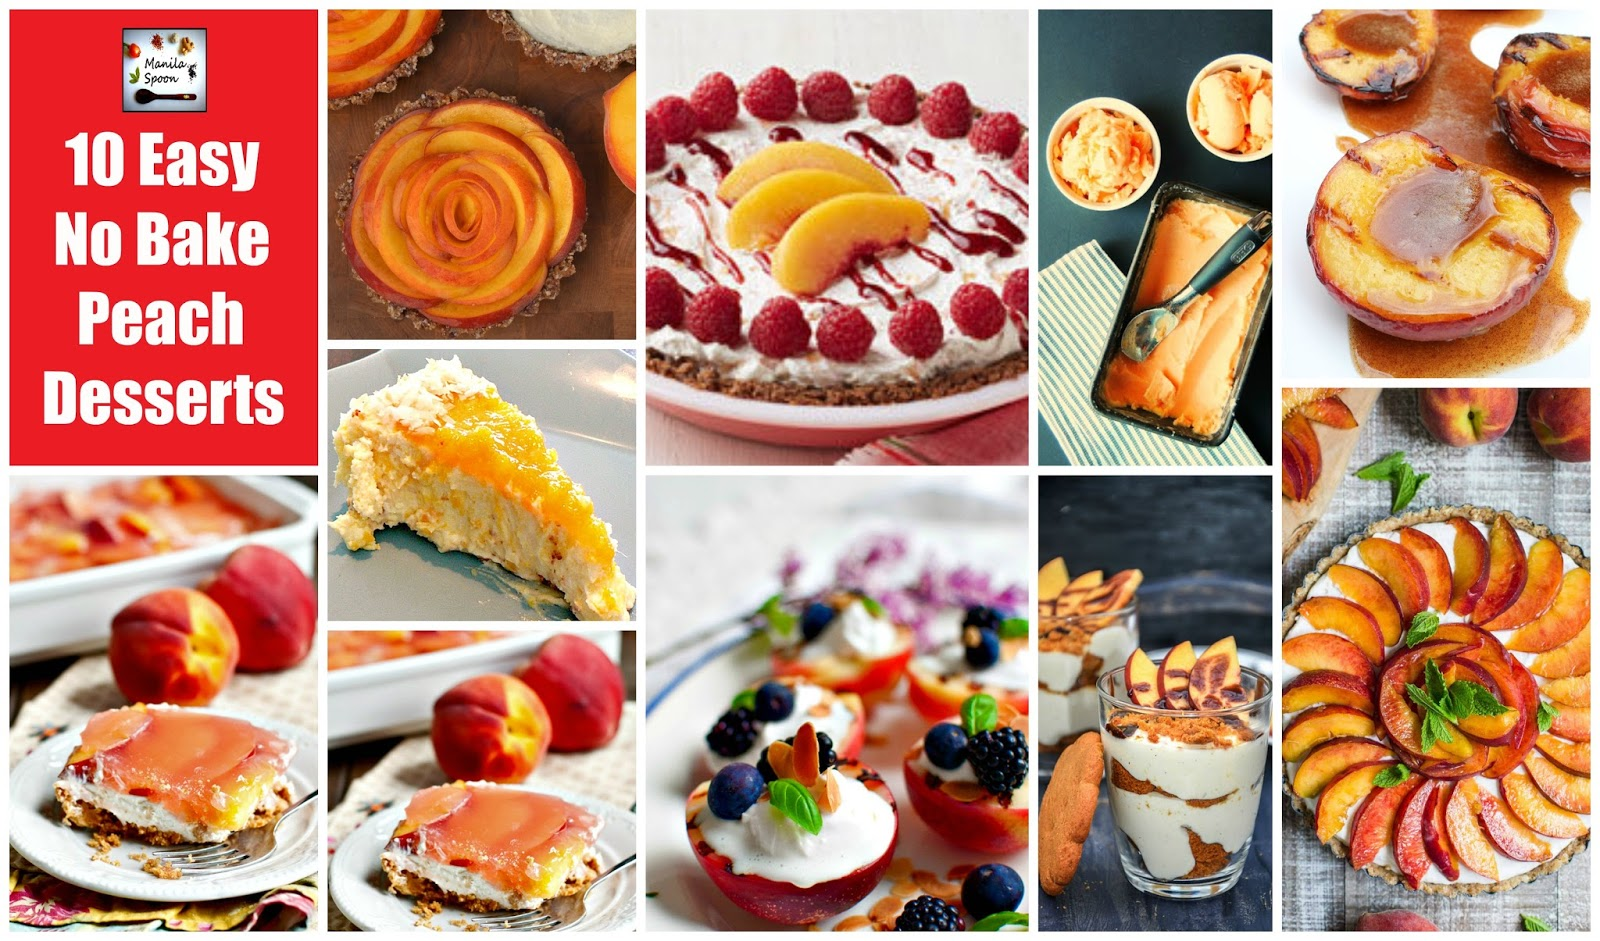 To celebrate peach season, here's a delicious collection of easy NO BAKE Peach desserts!